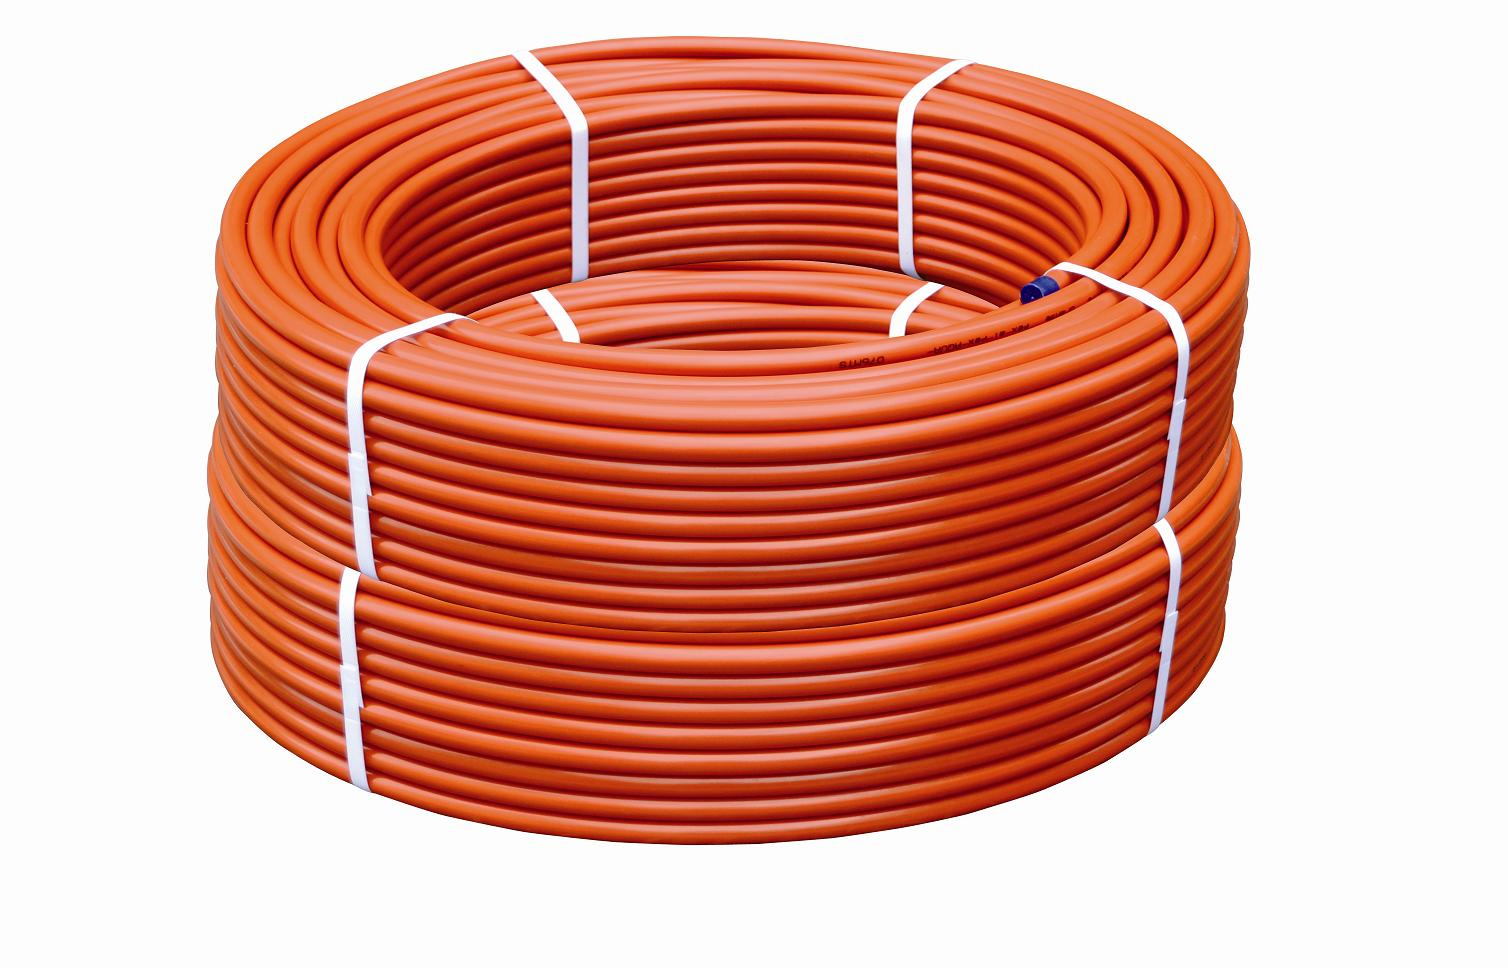 ktm-red-laser-pex-al-pex-hdpe-pipe-aluminium-plastic-hot-water-pipe.jpg